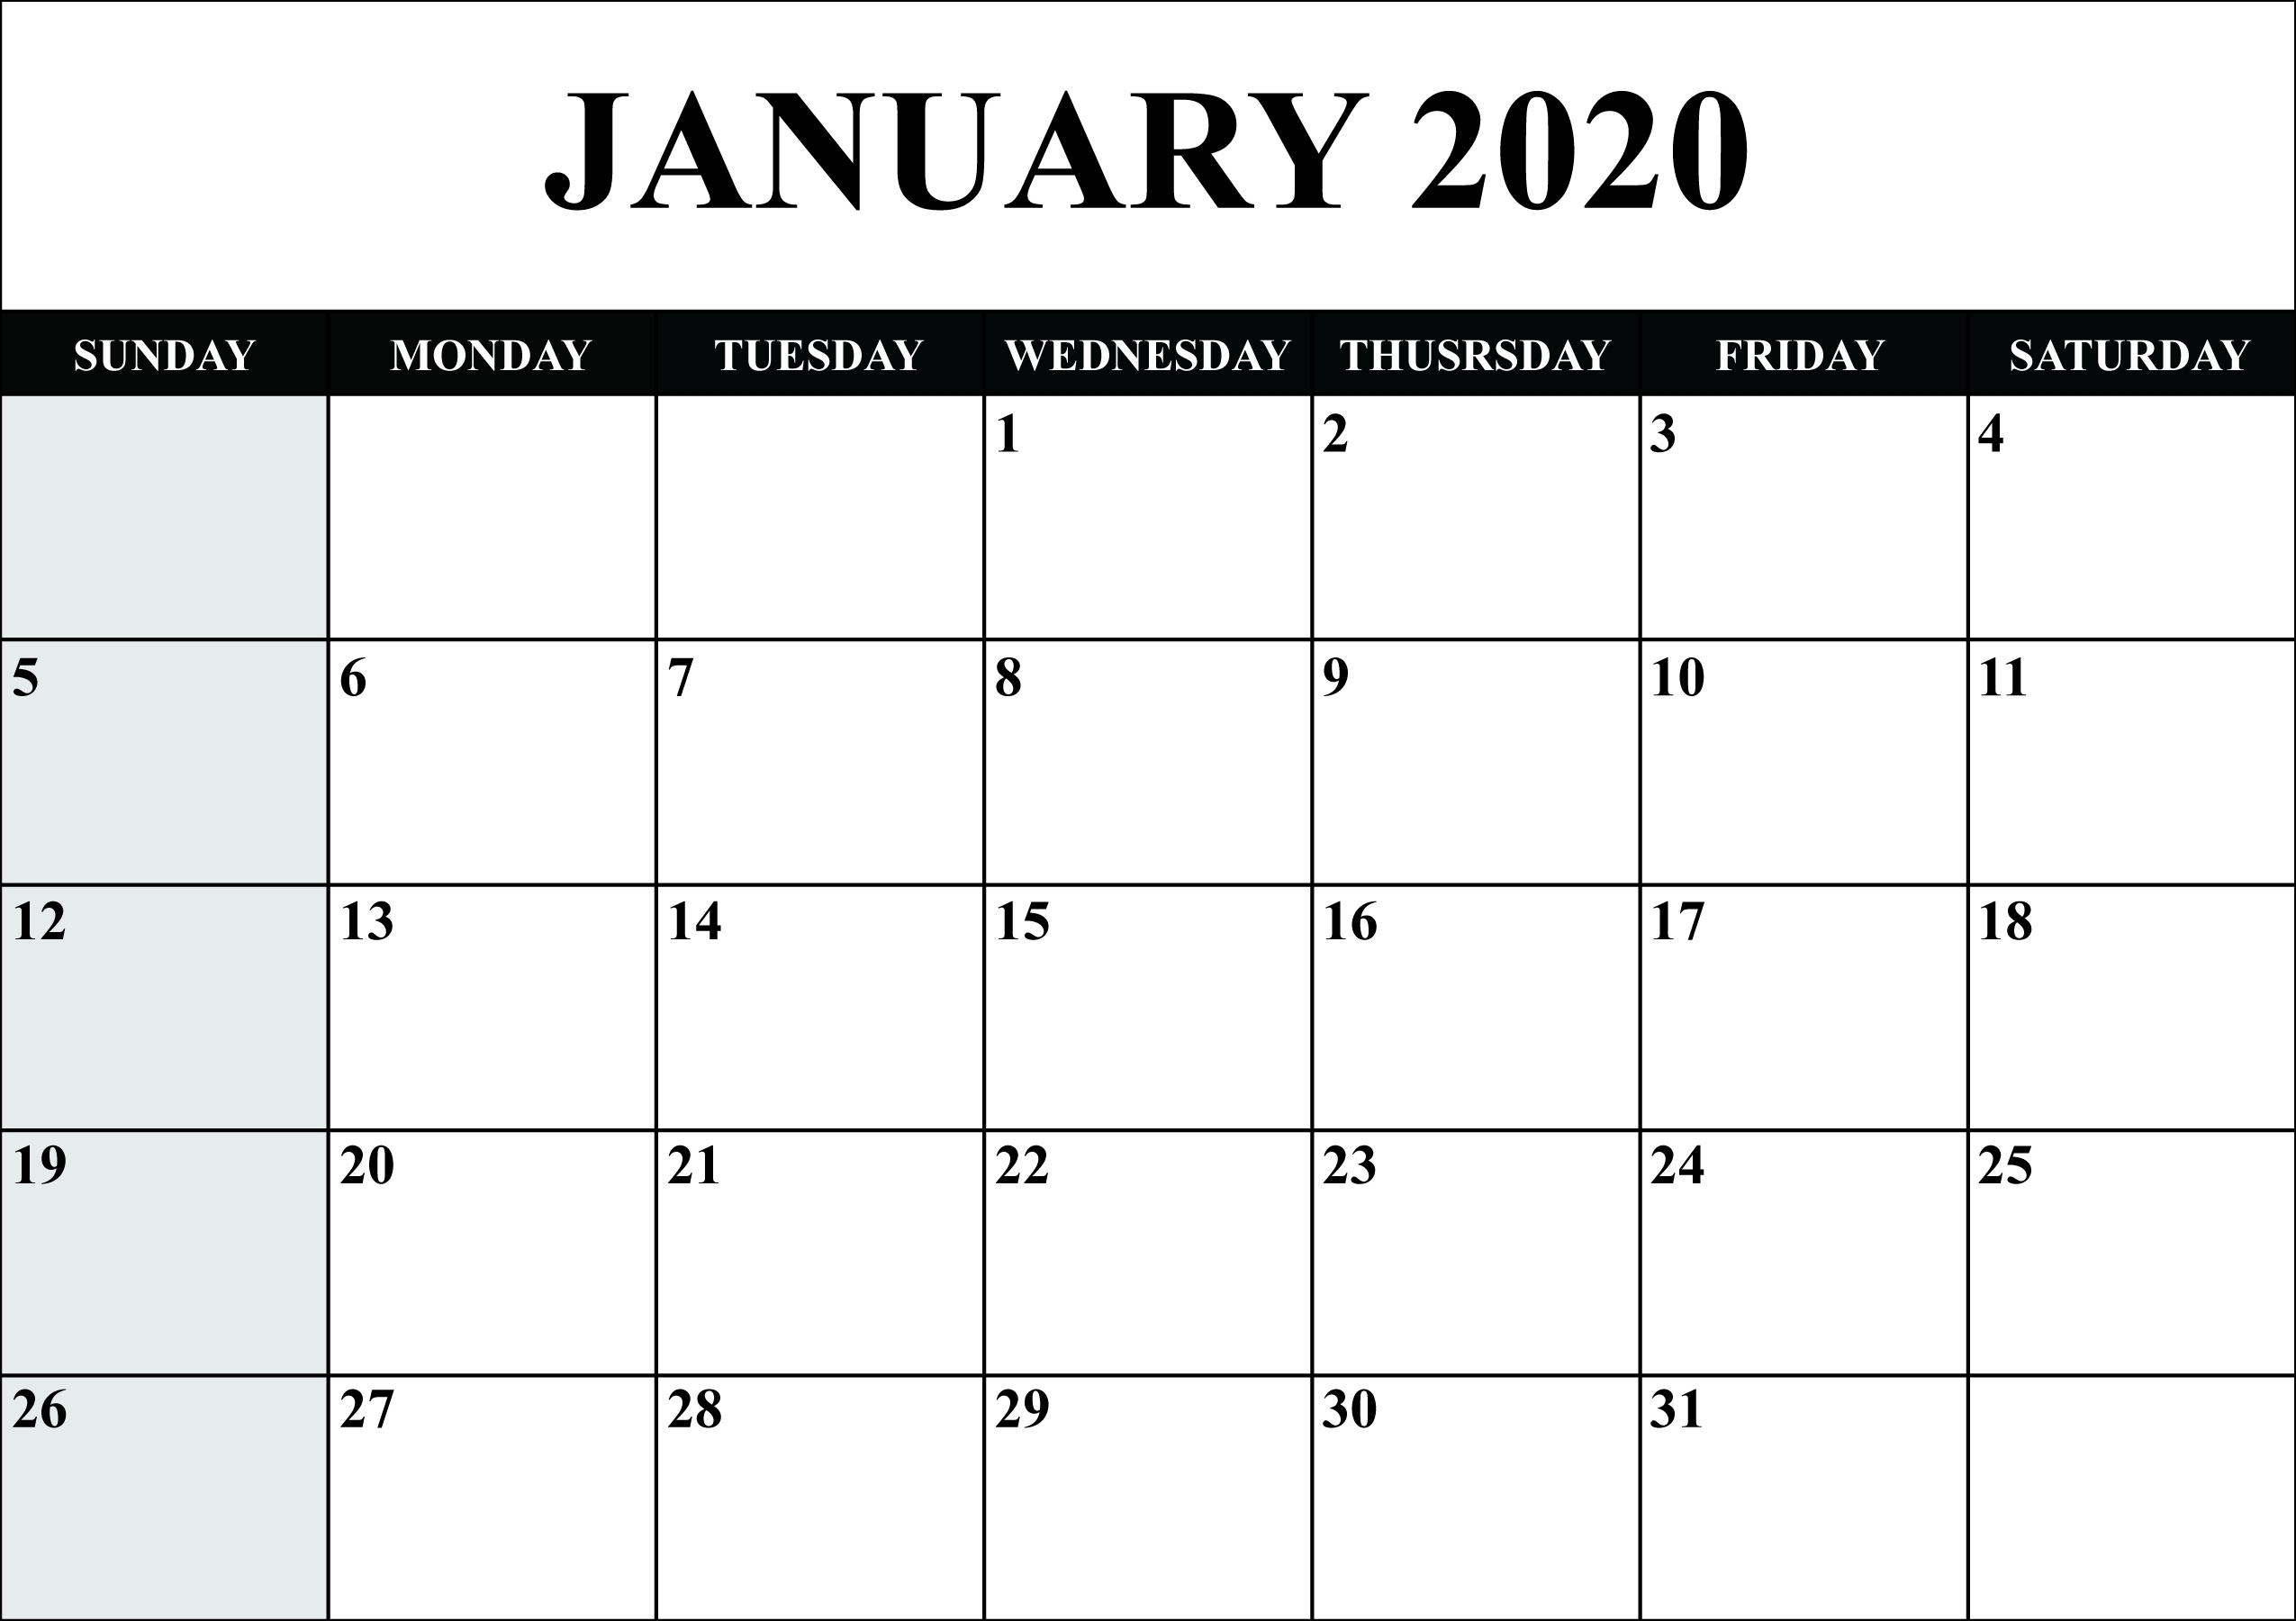 Free Blank January 2020 Calendar Printable In Pdf, Word-January 2020 Calendar Free